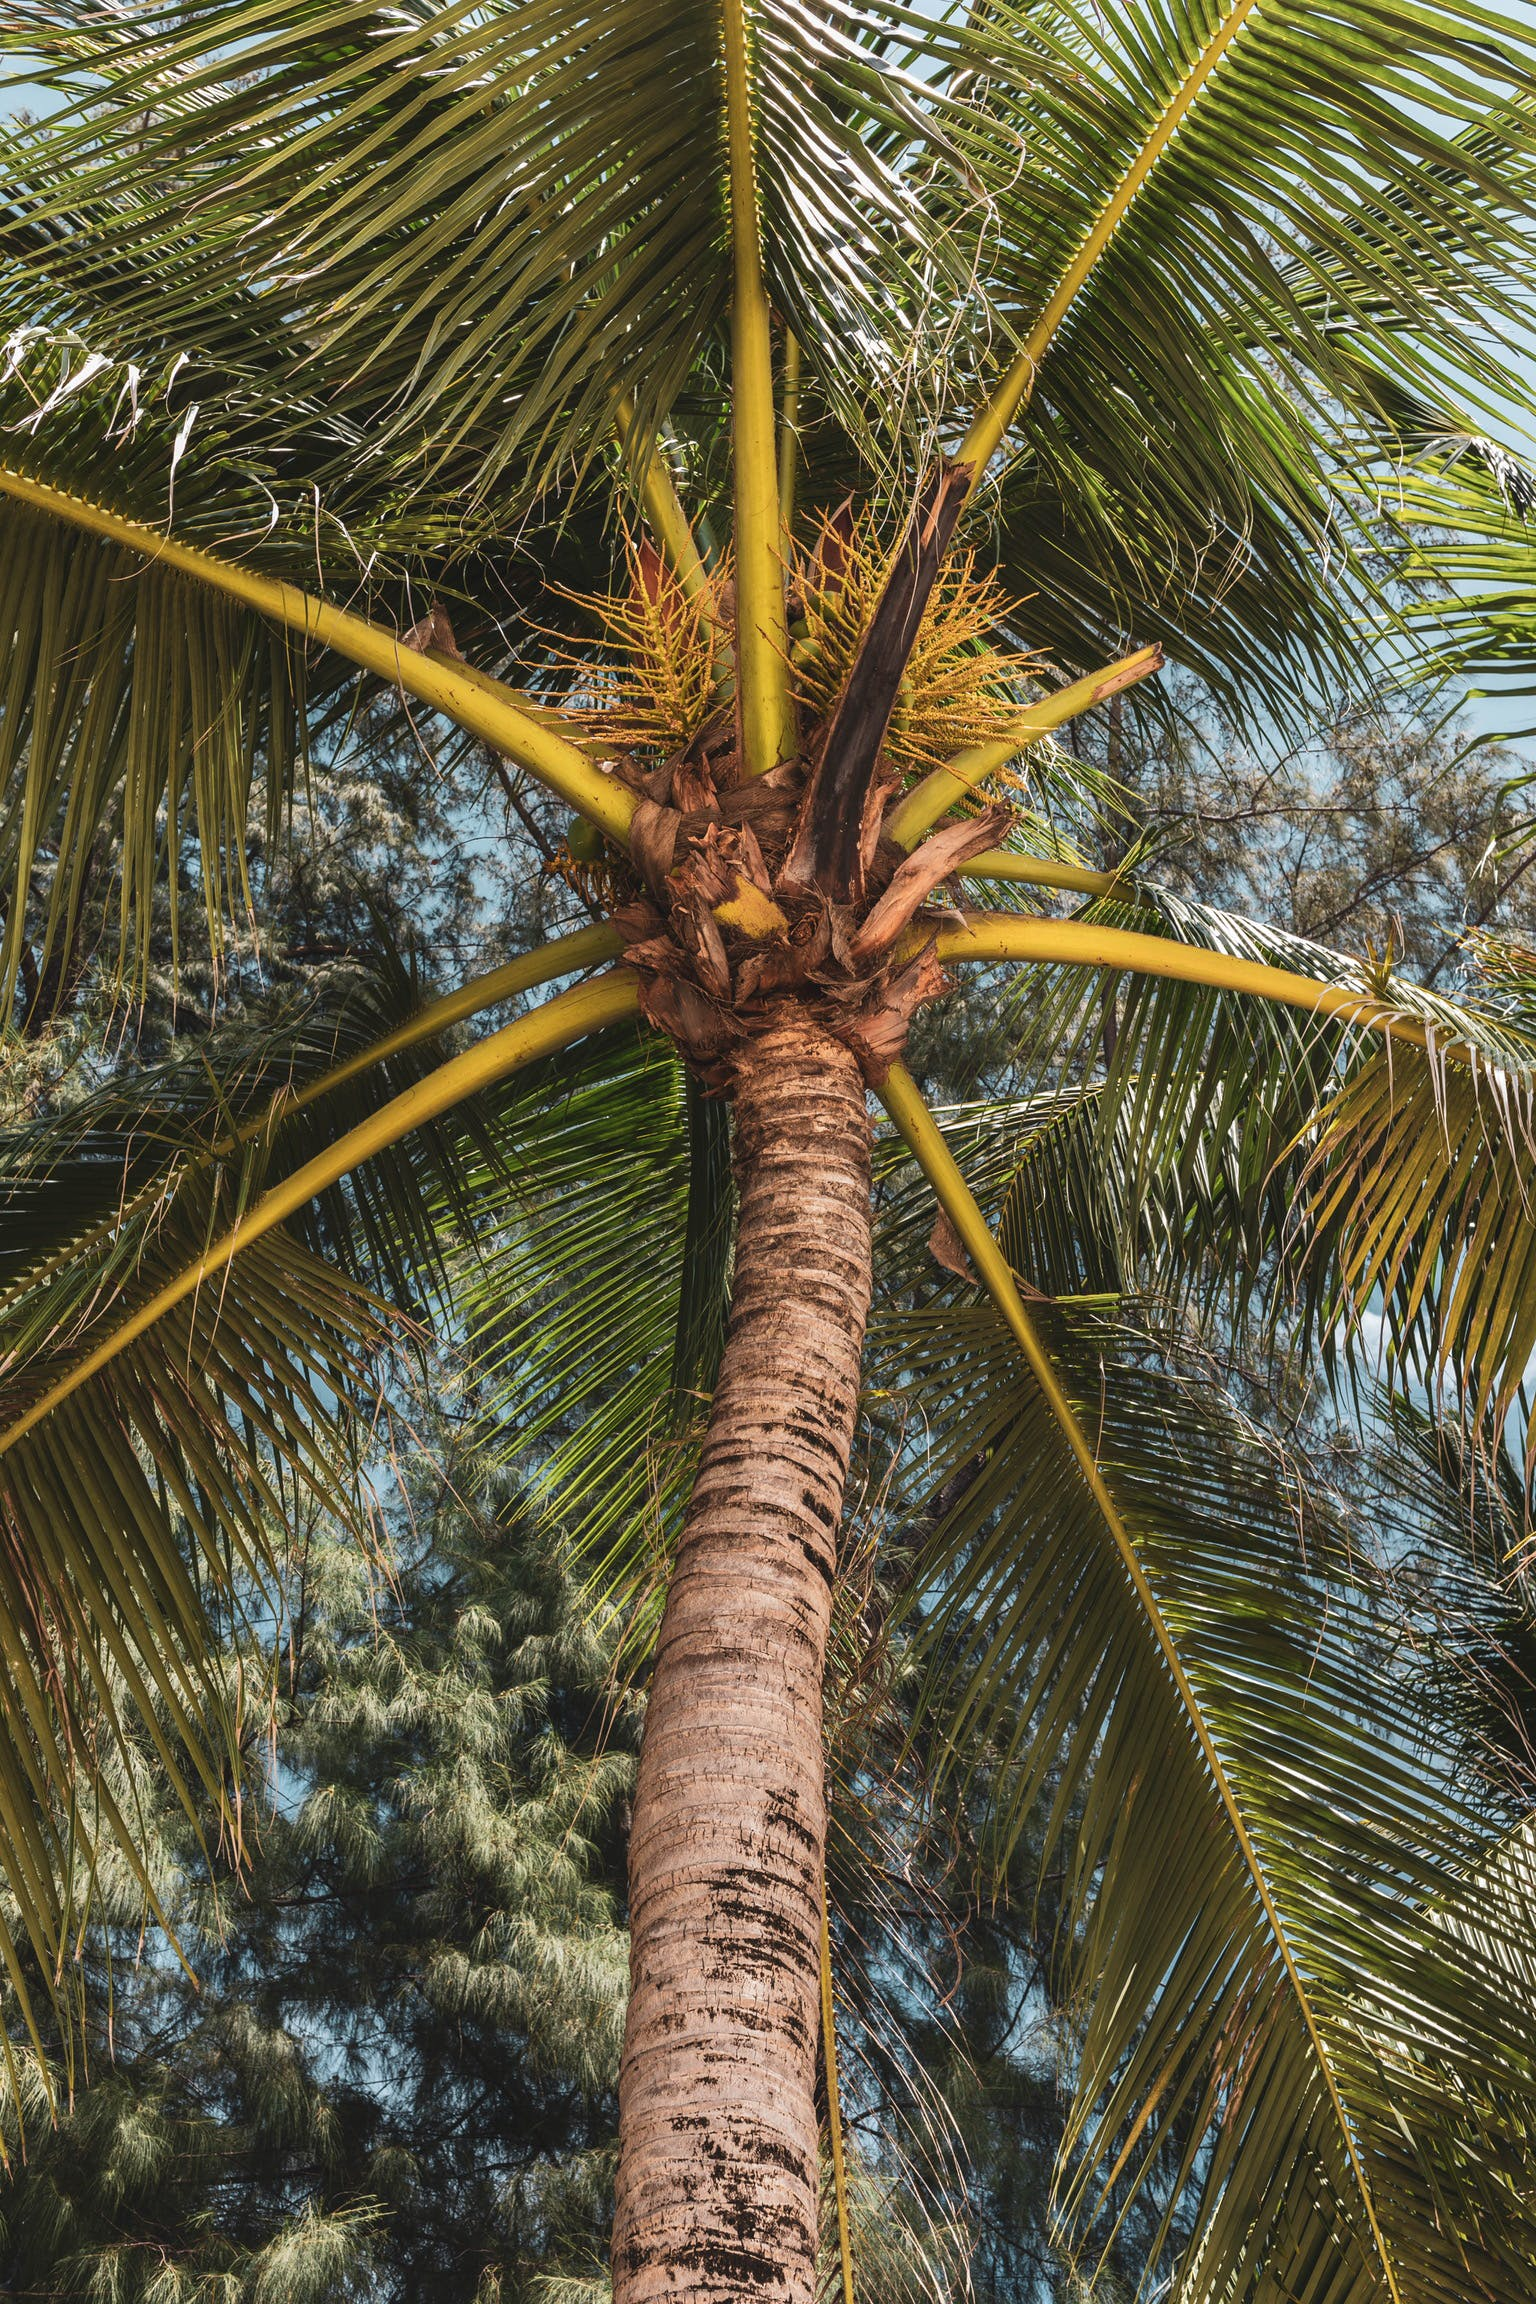 Free stock photo of natural, coconut tree, abstract photo